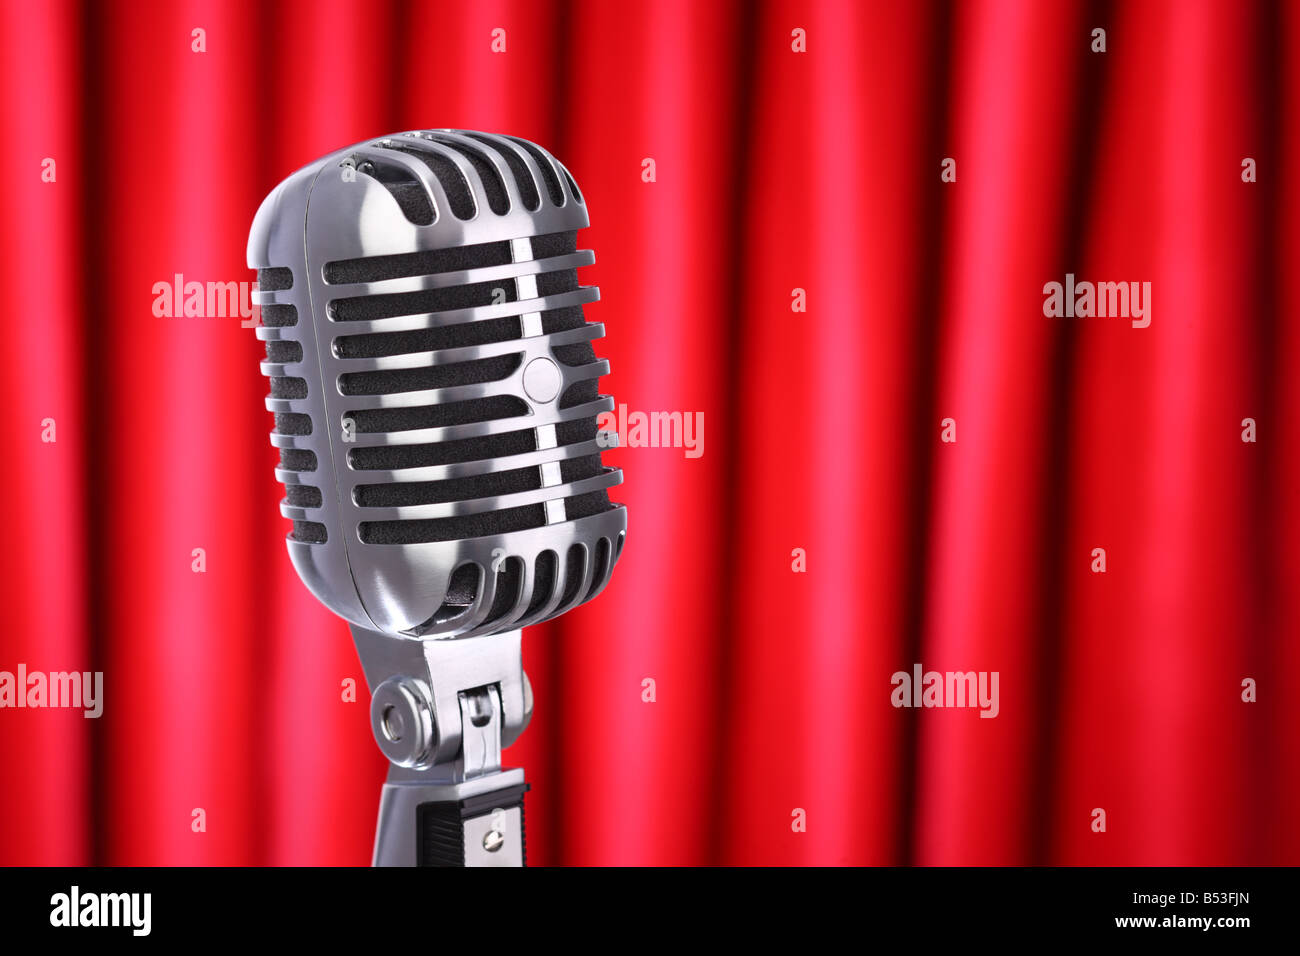 Close up of classic retro microphone with red curtain background - Stock Image